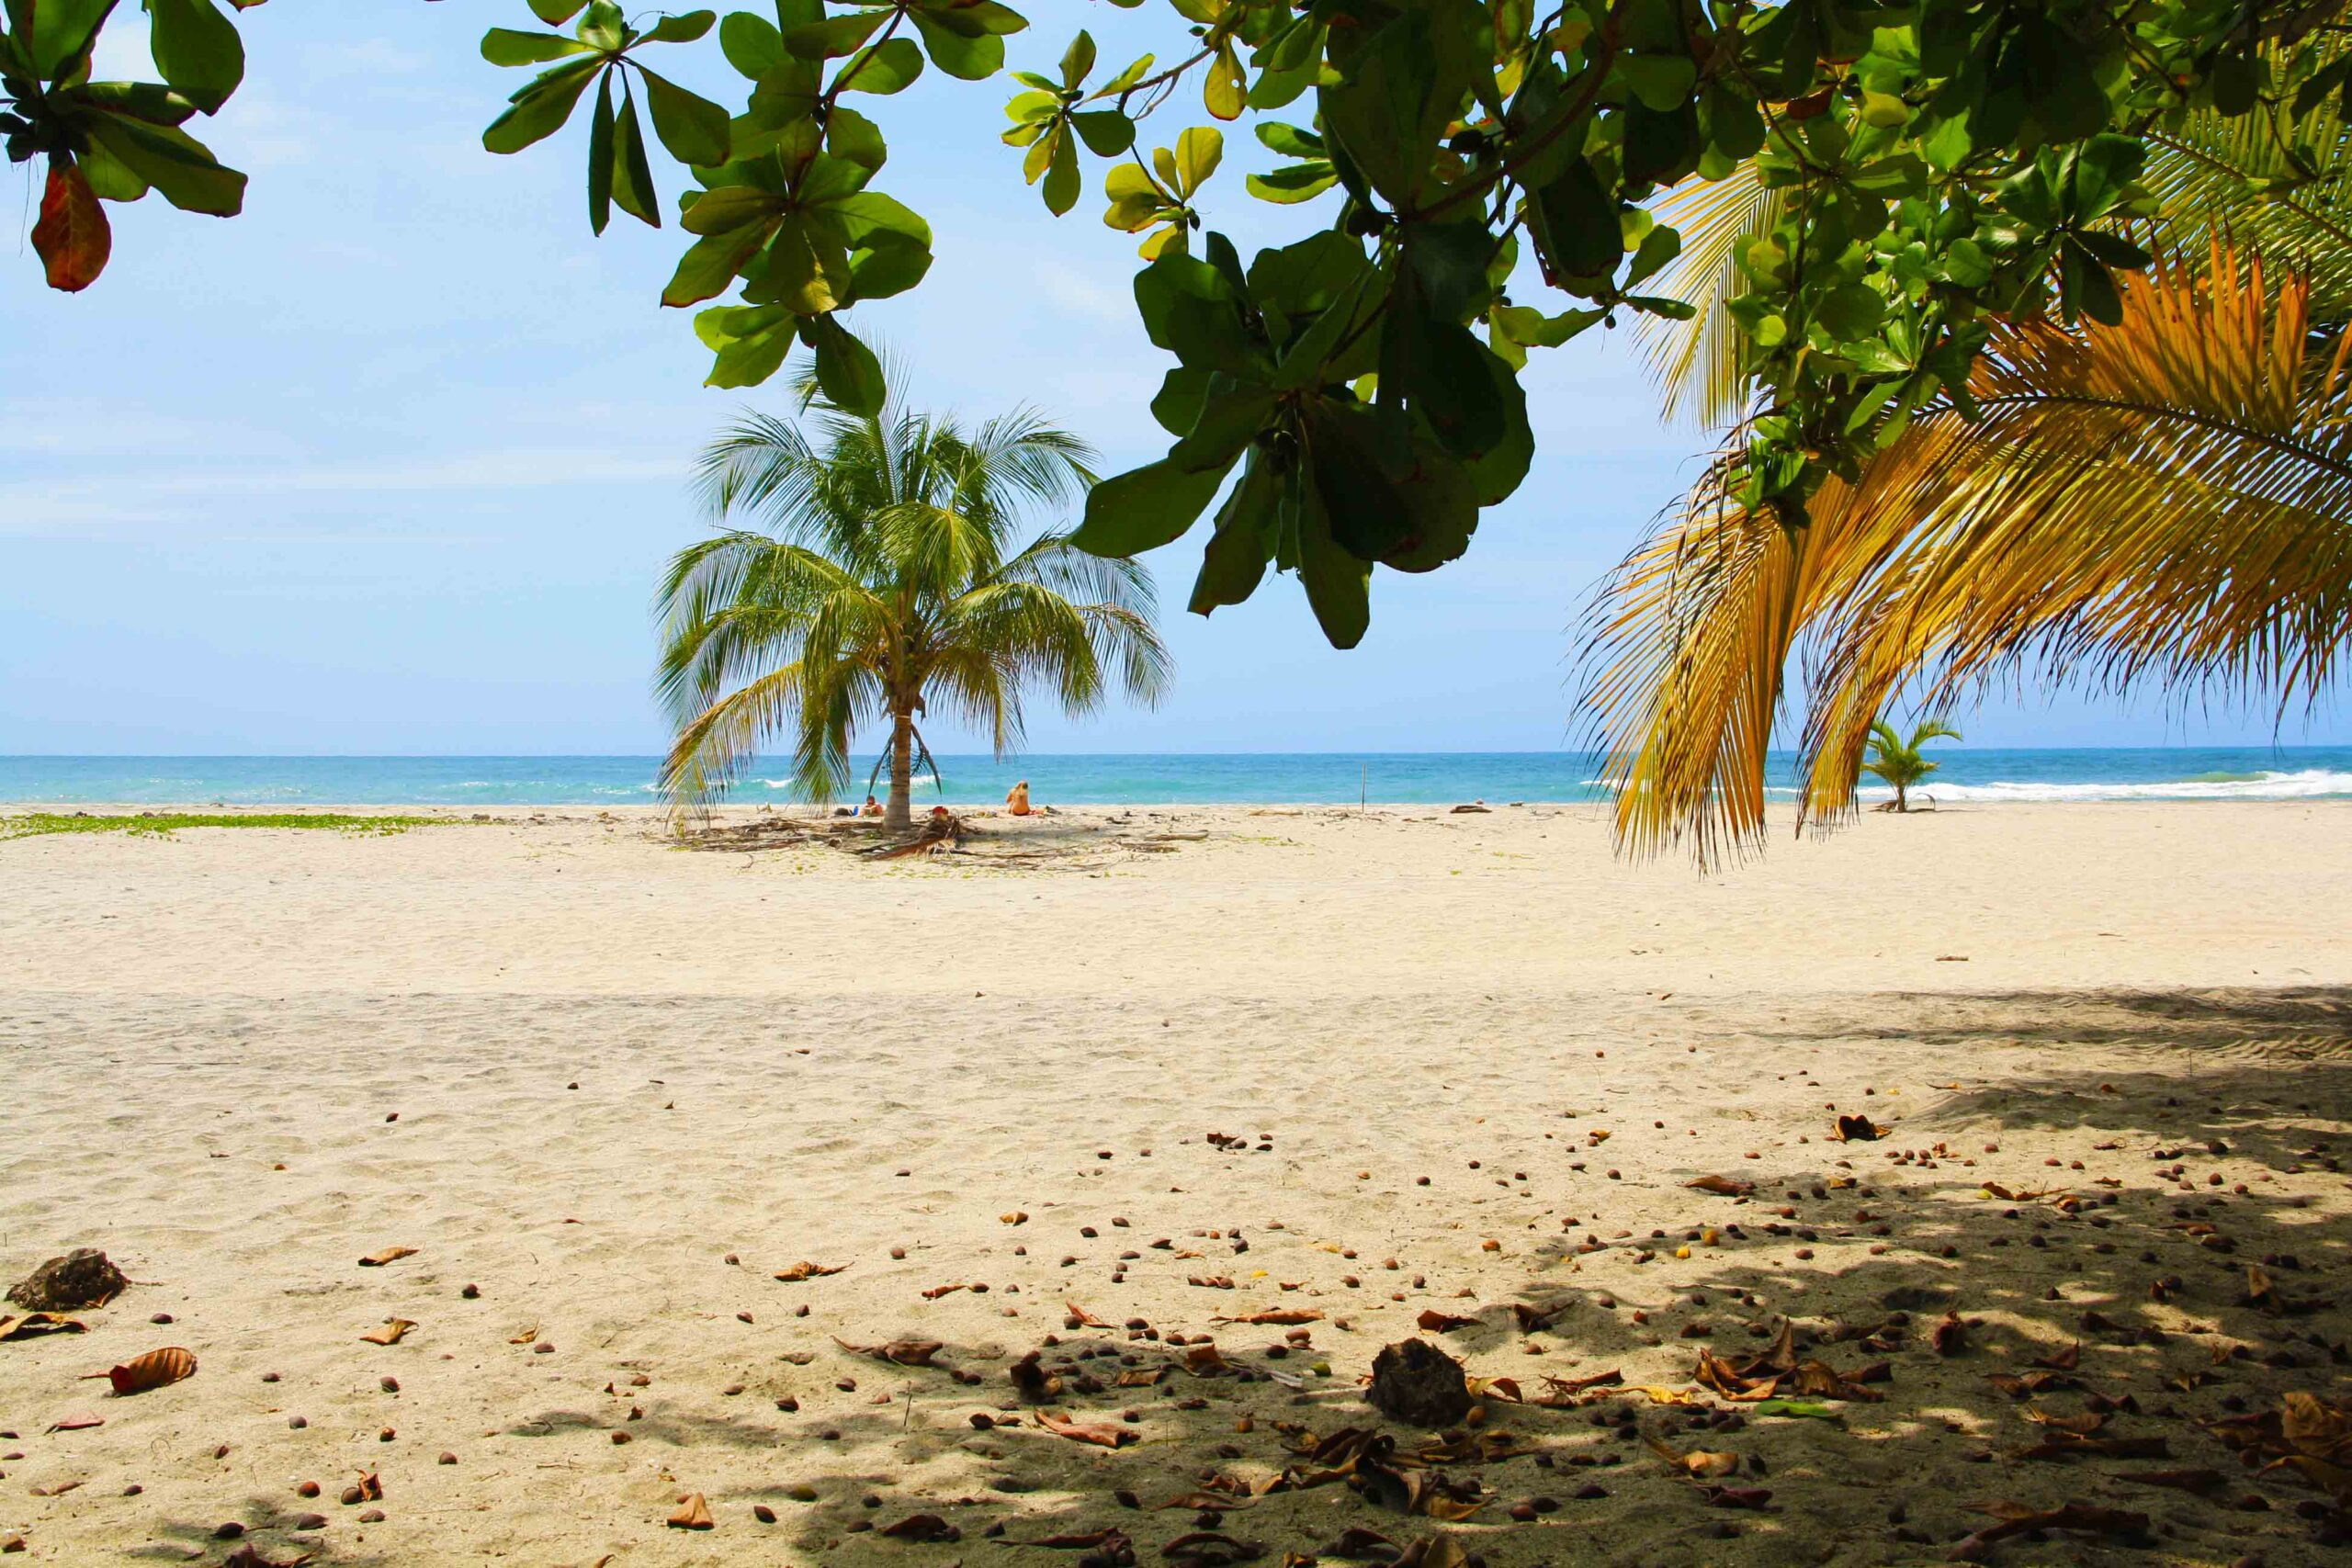 Beach at the Caribean coast Colombia